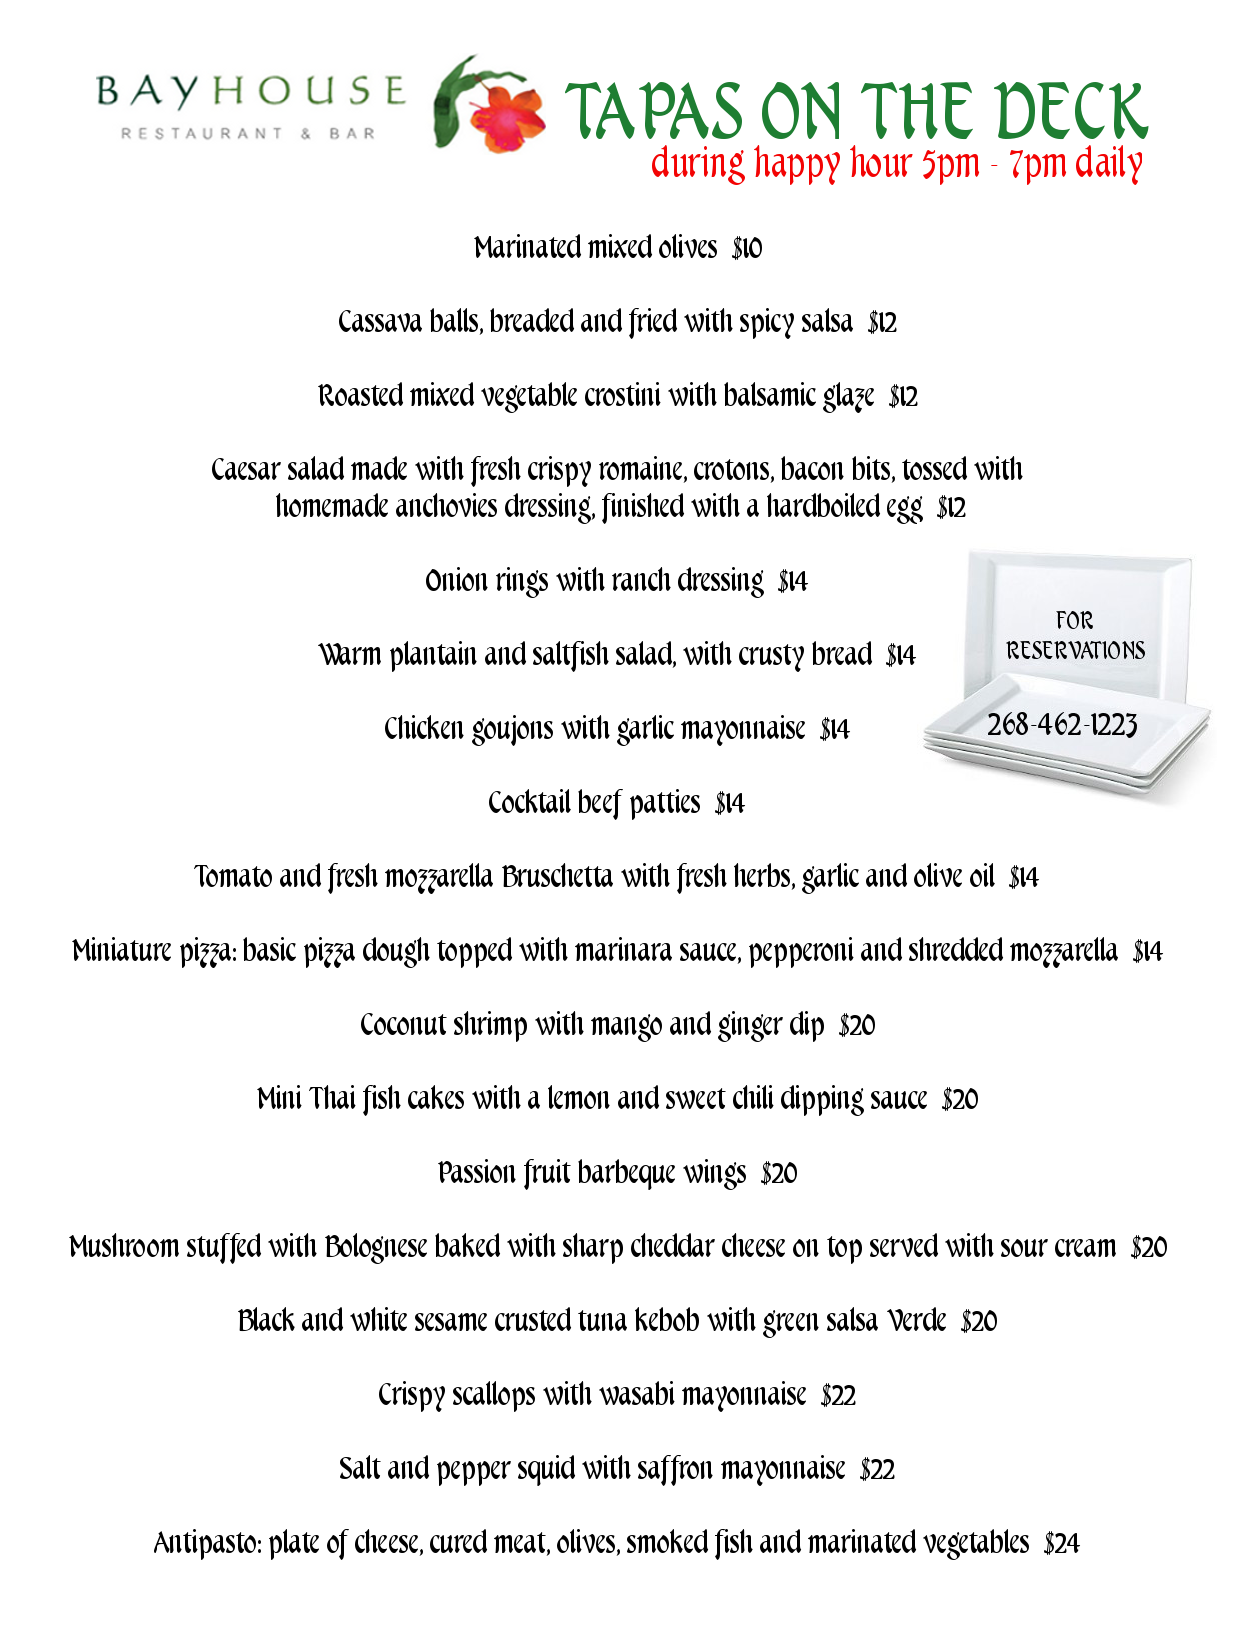 bayhouse_tapas_menu